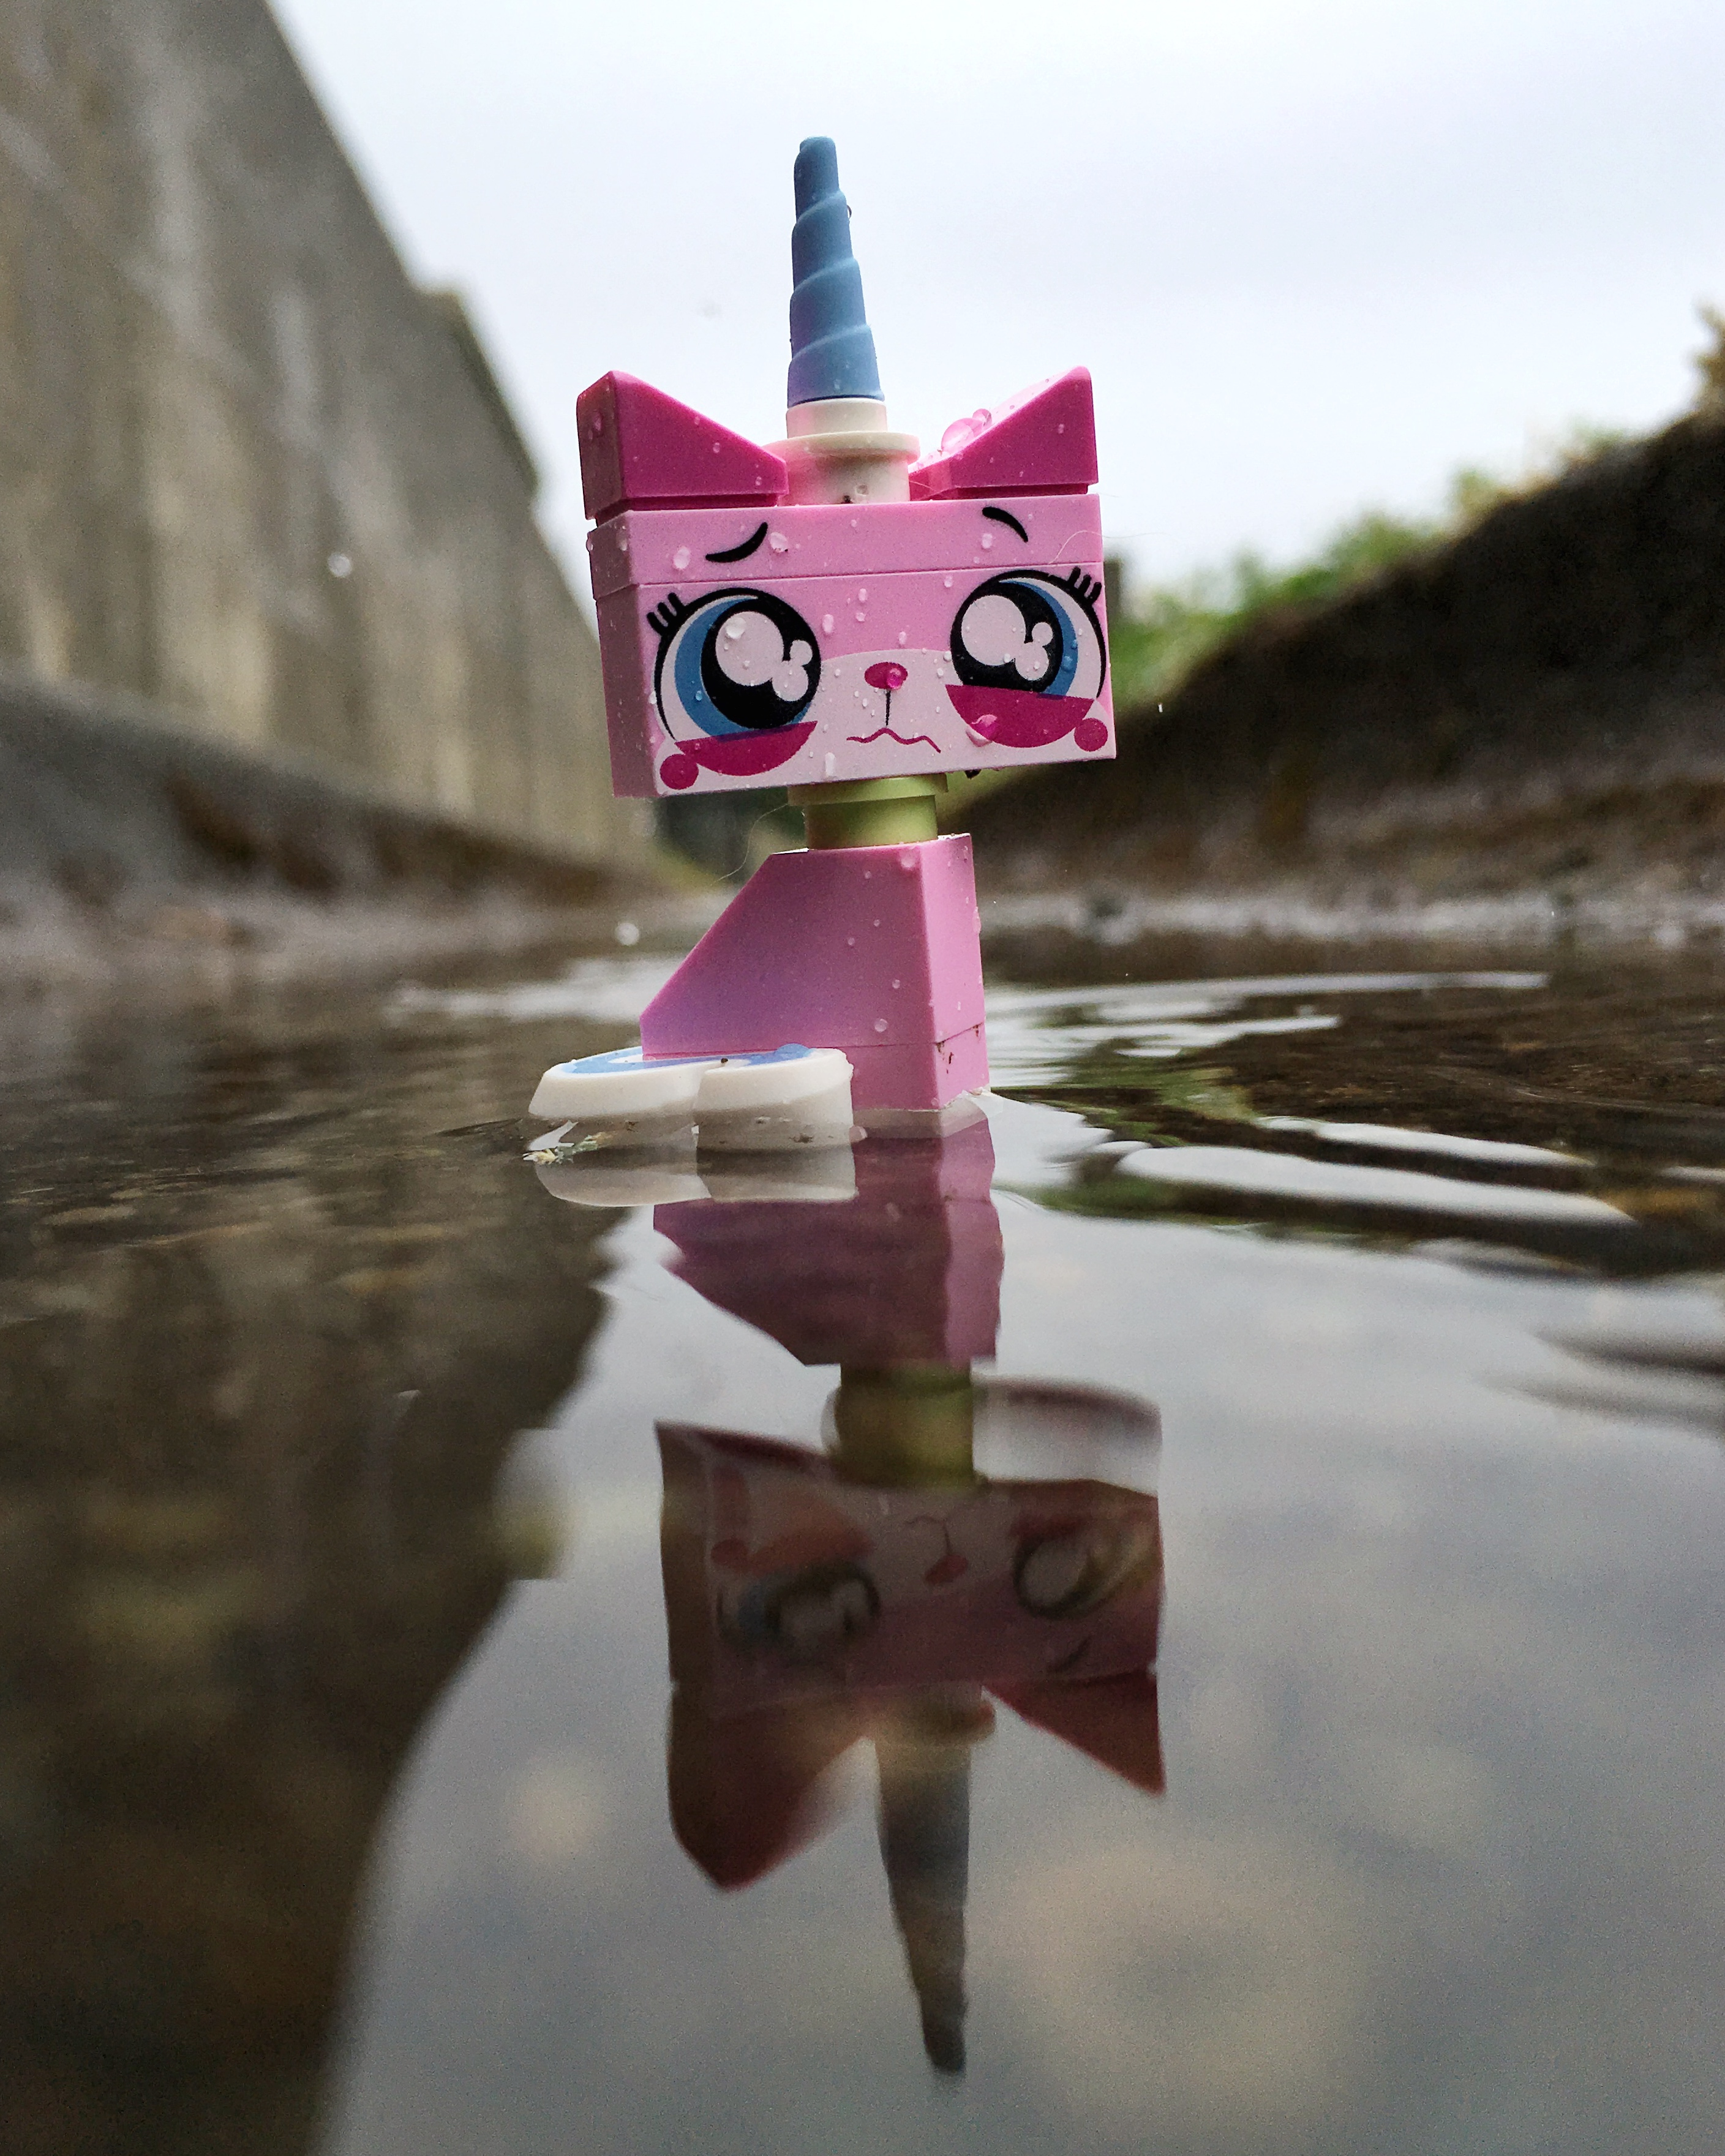 Lego-Unikittcy-Toys-outdoor-photography